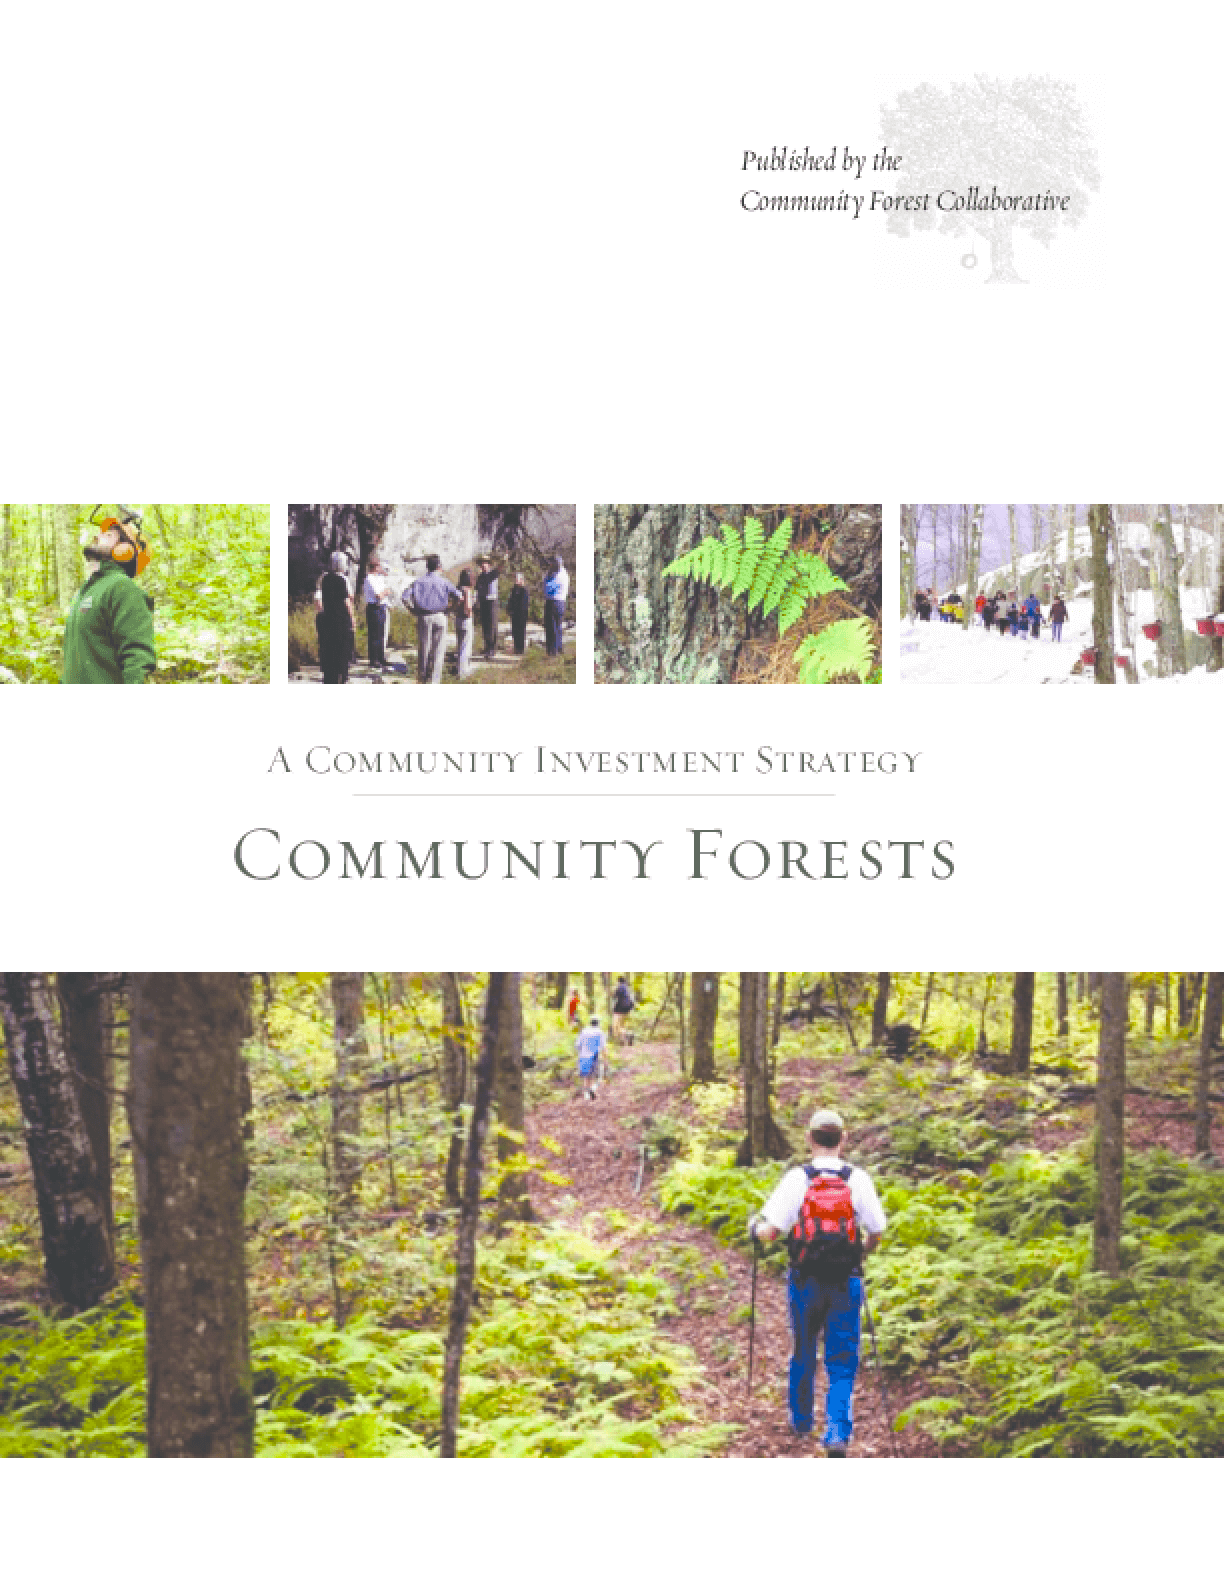 Community Forests: A Community Investment Strategy